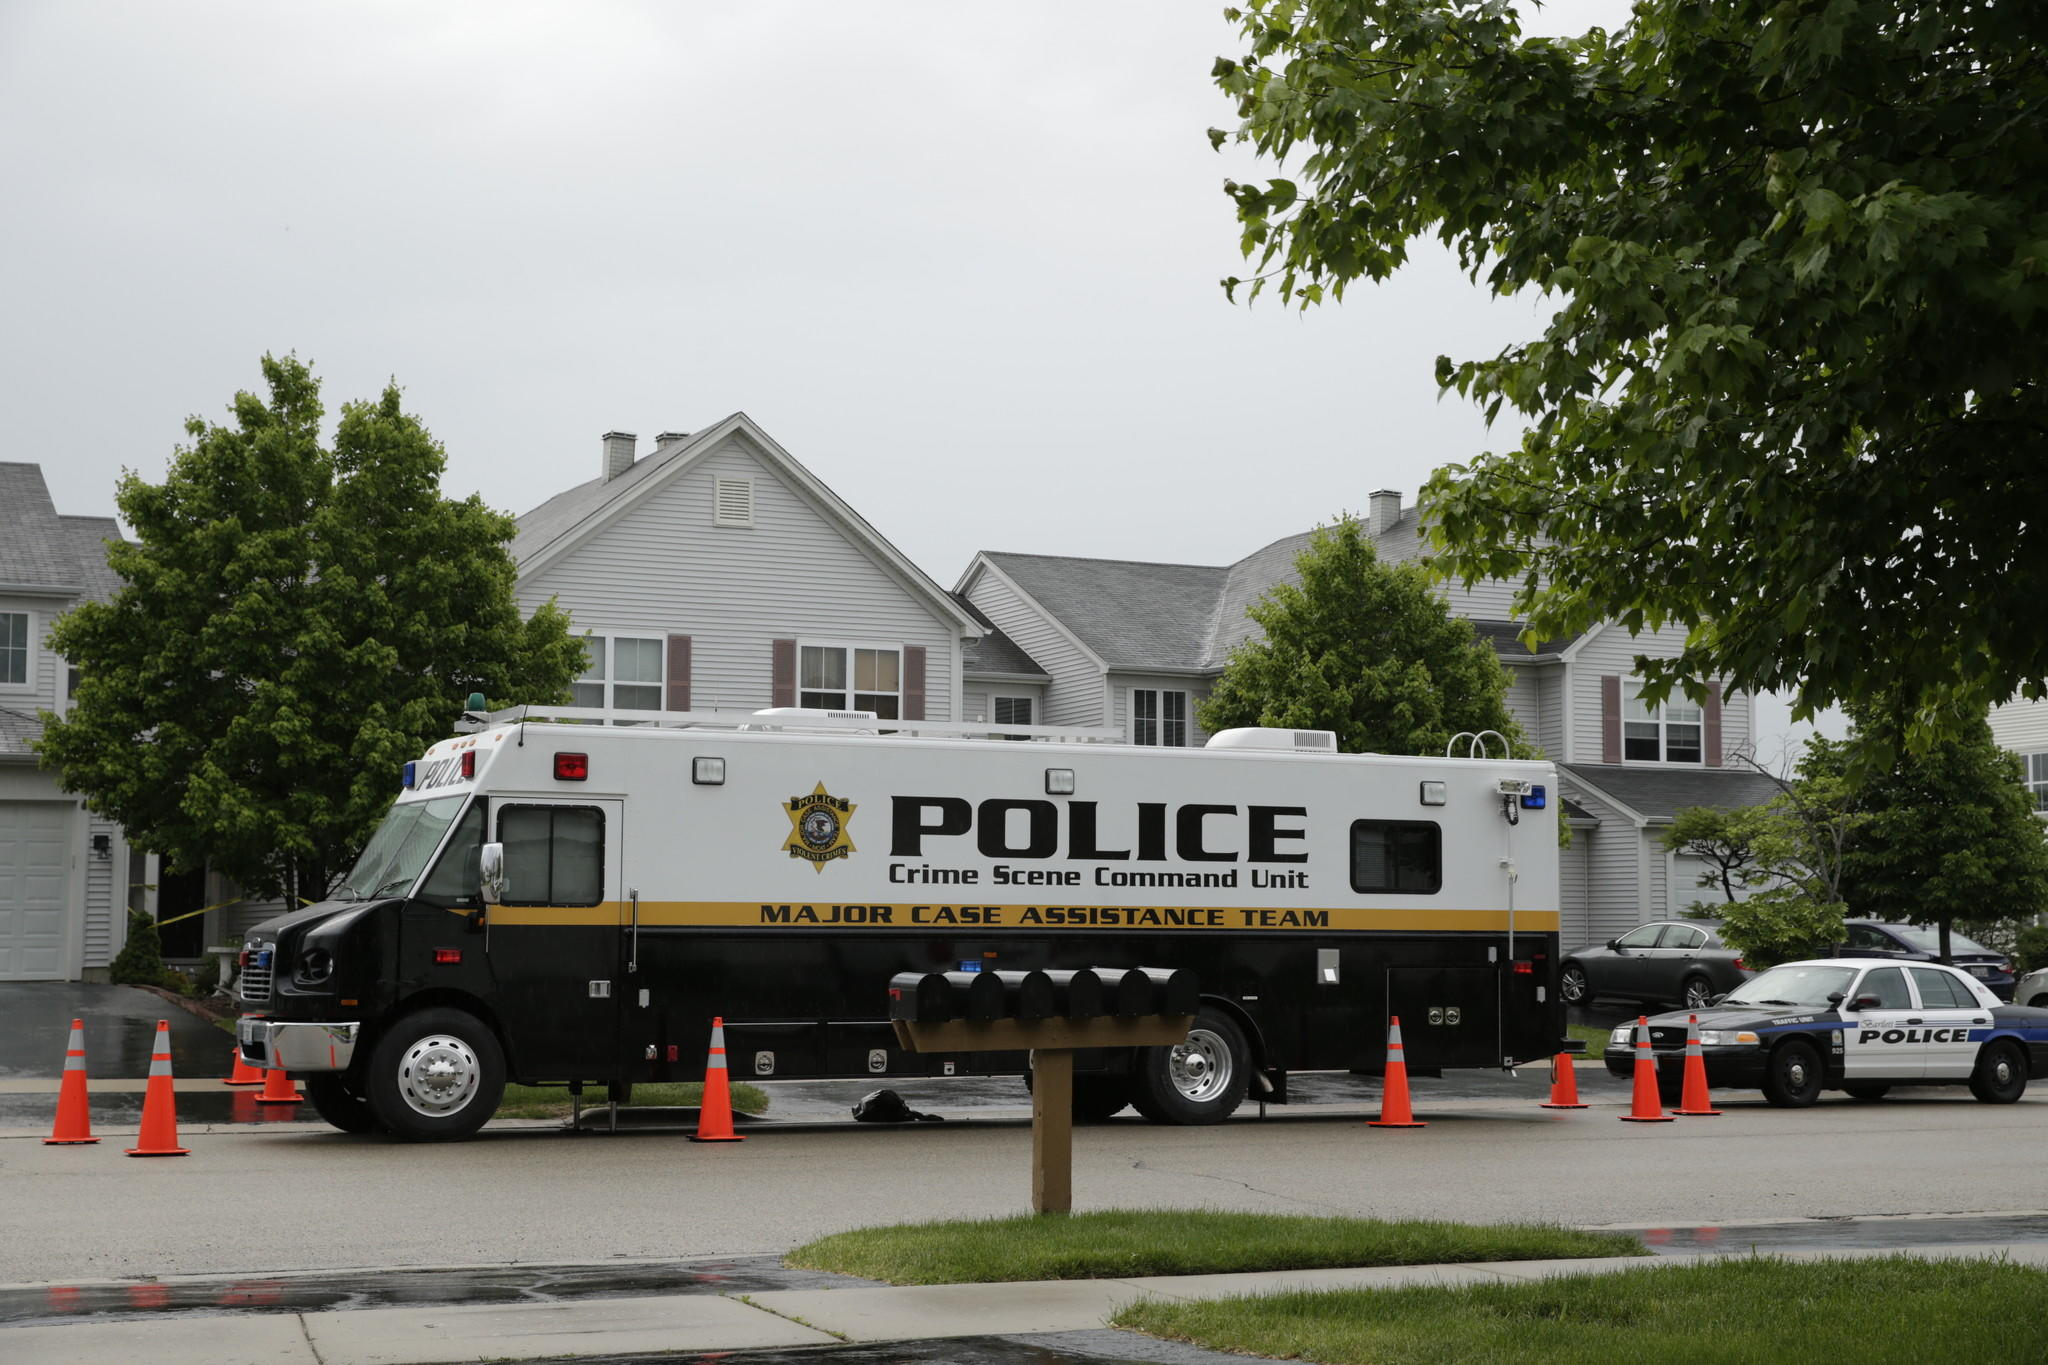 A Bartlett police car and the Police Crime Scene Command Unit sit outside of a town home in Bartlett where two people were found dead.